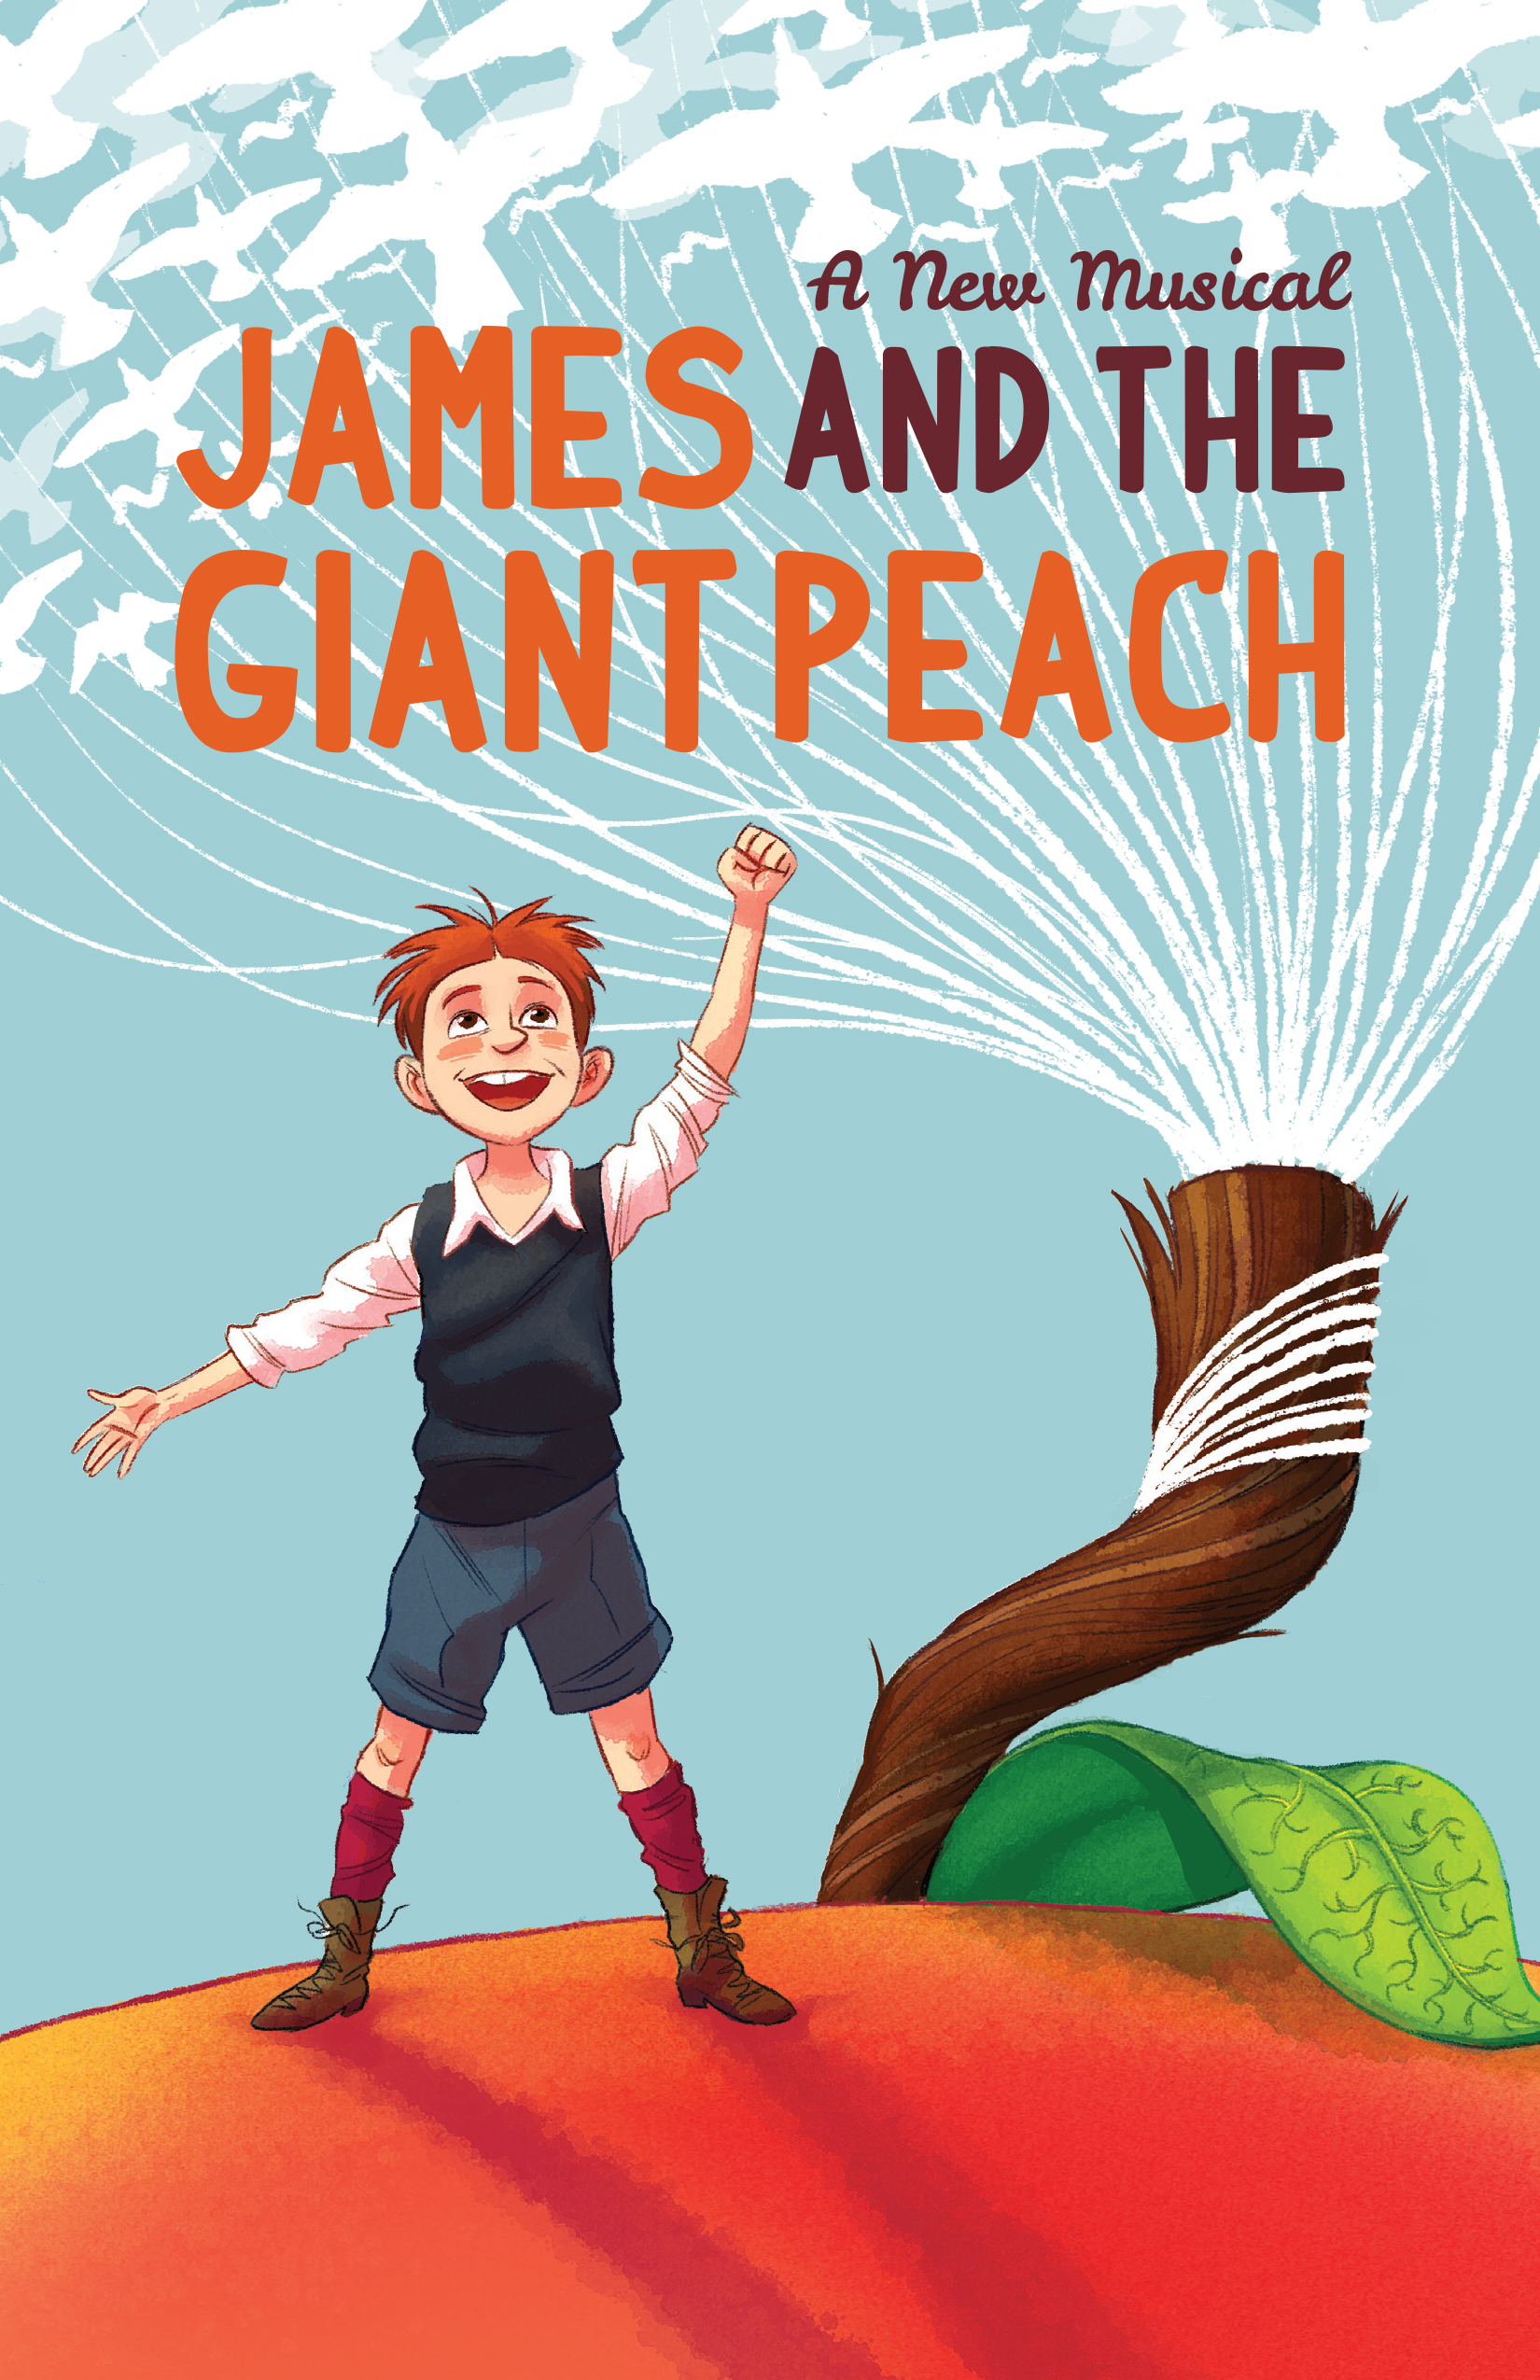 James And The Giant Peach Poster Dylan Meconis